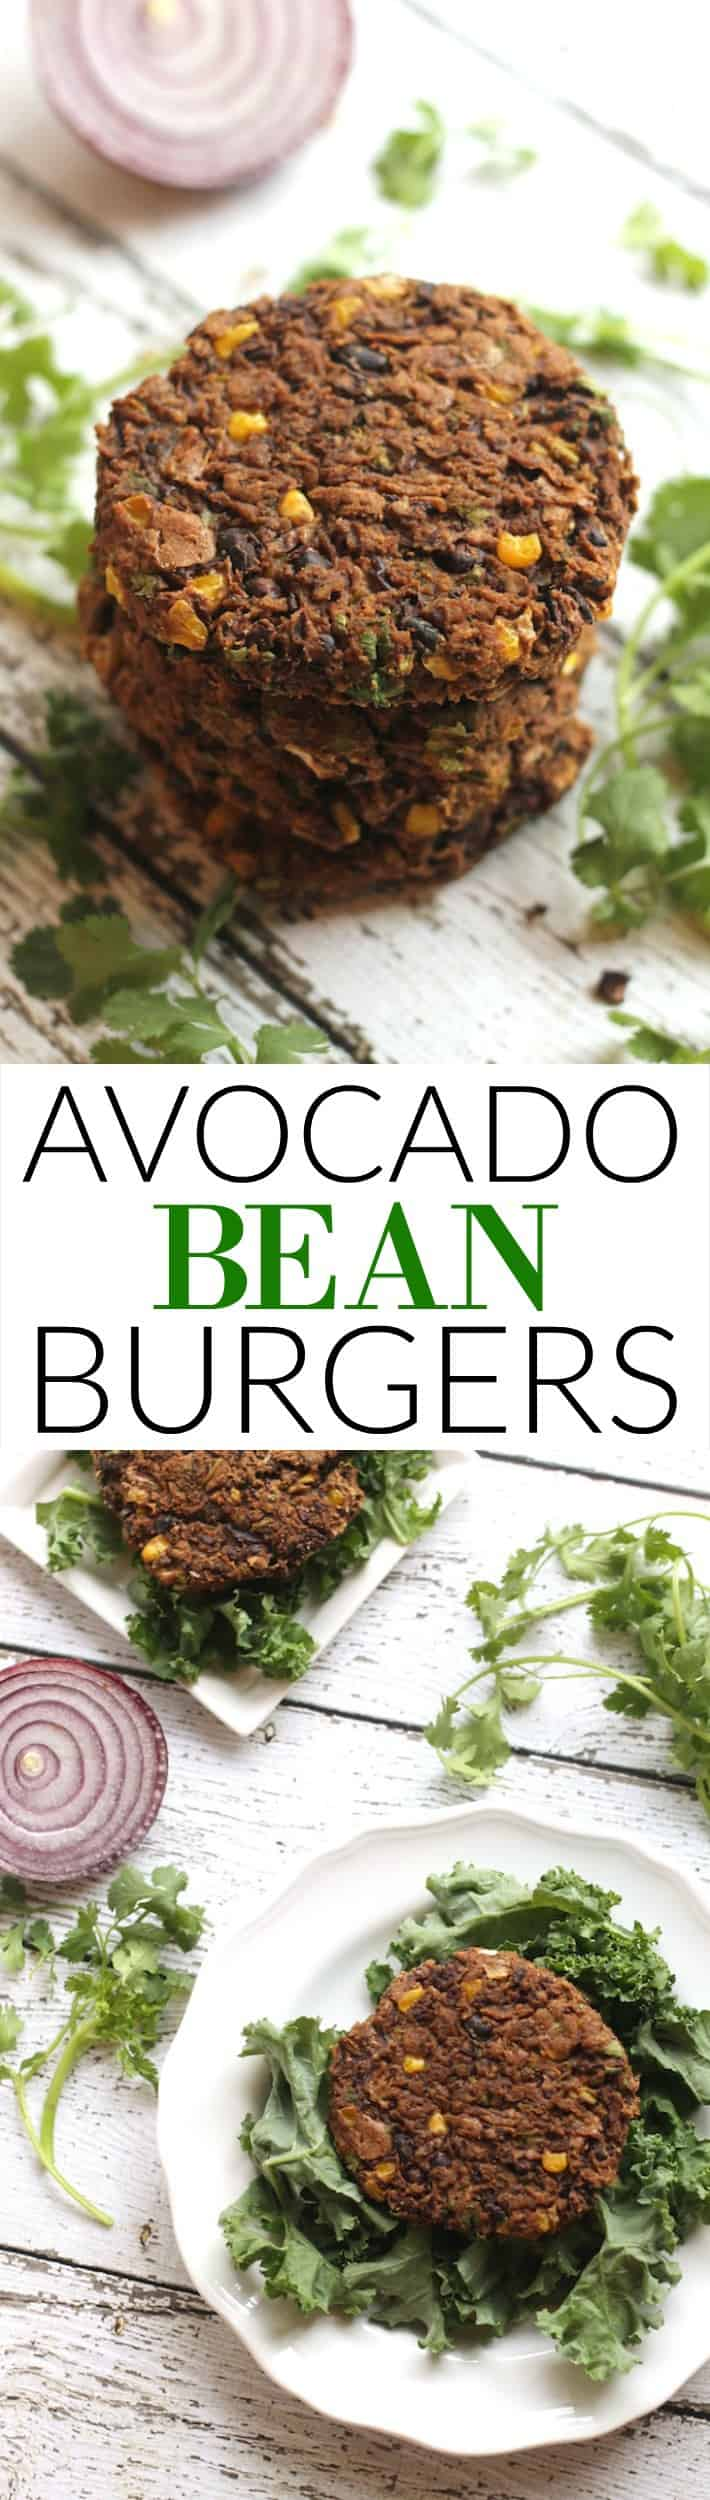 These Mexican-spiced Avocado Bean Burgers make the perfect quick lunch or dinner! They're packed with plant-based protein and fiber for a tasty and simple meatless meal. Vegan and gluten-free!